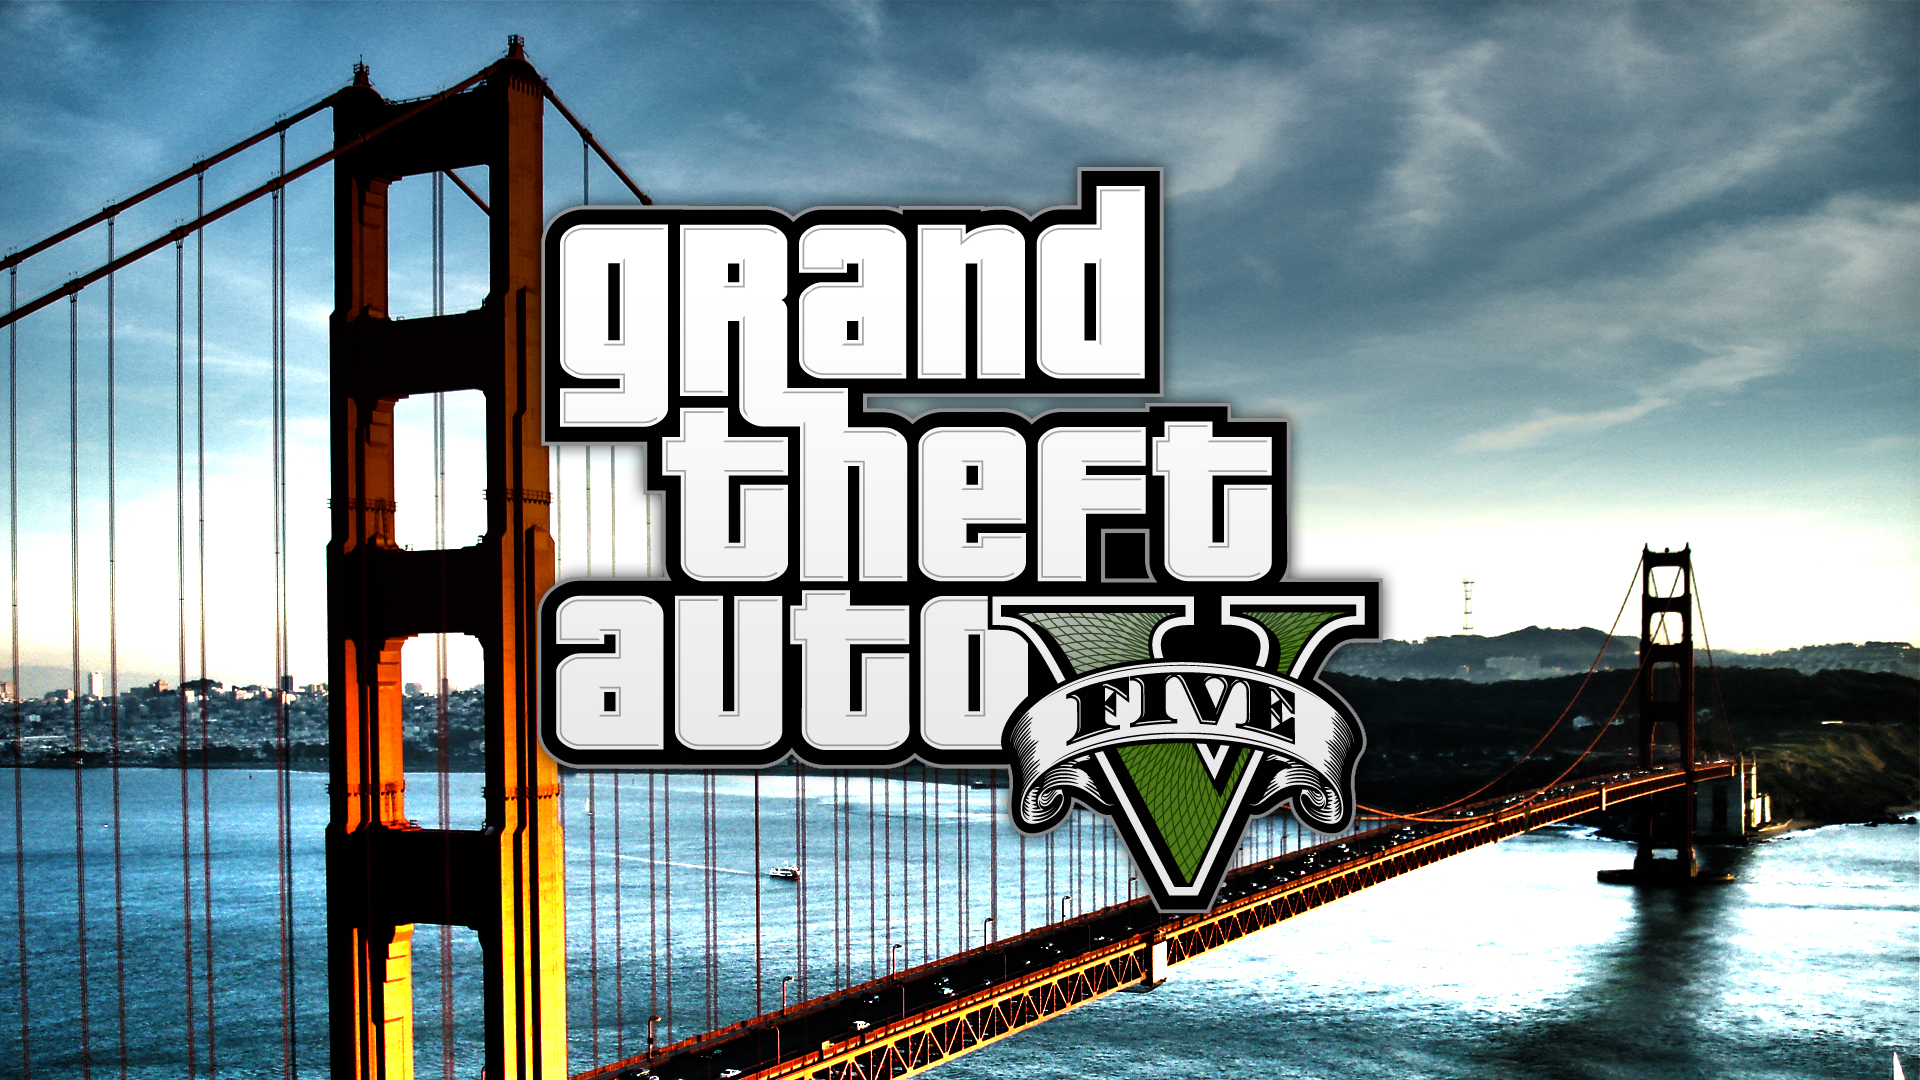 Wallpaper Gta 5 Grand Theft Auto V Rockstar 15 Wallpapers 1920x1080